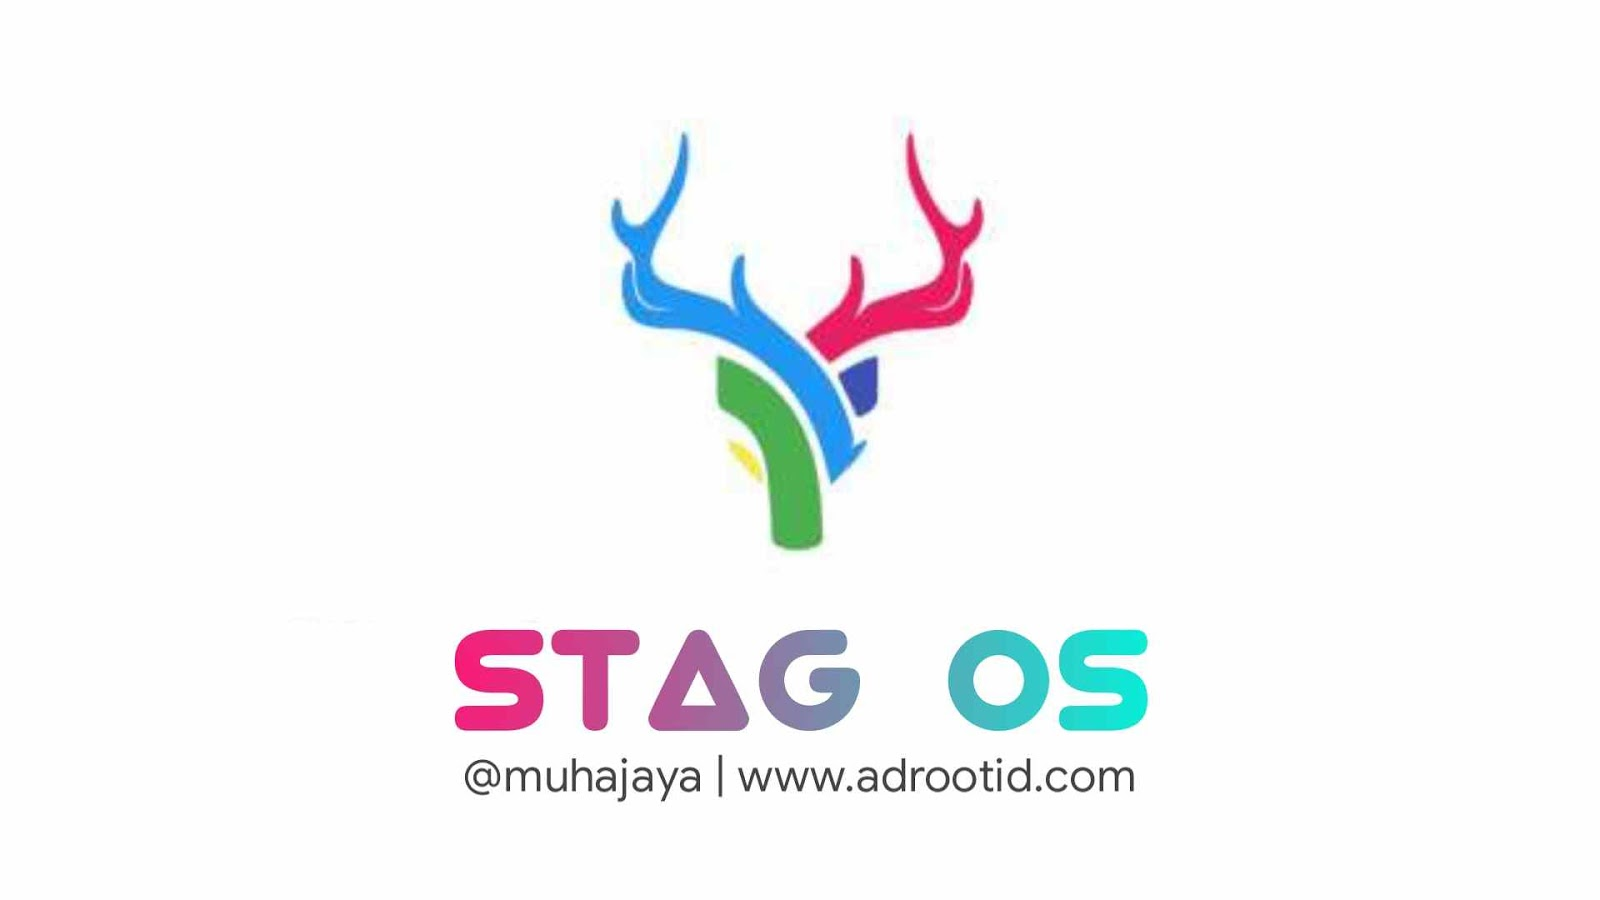 Stag os